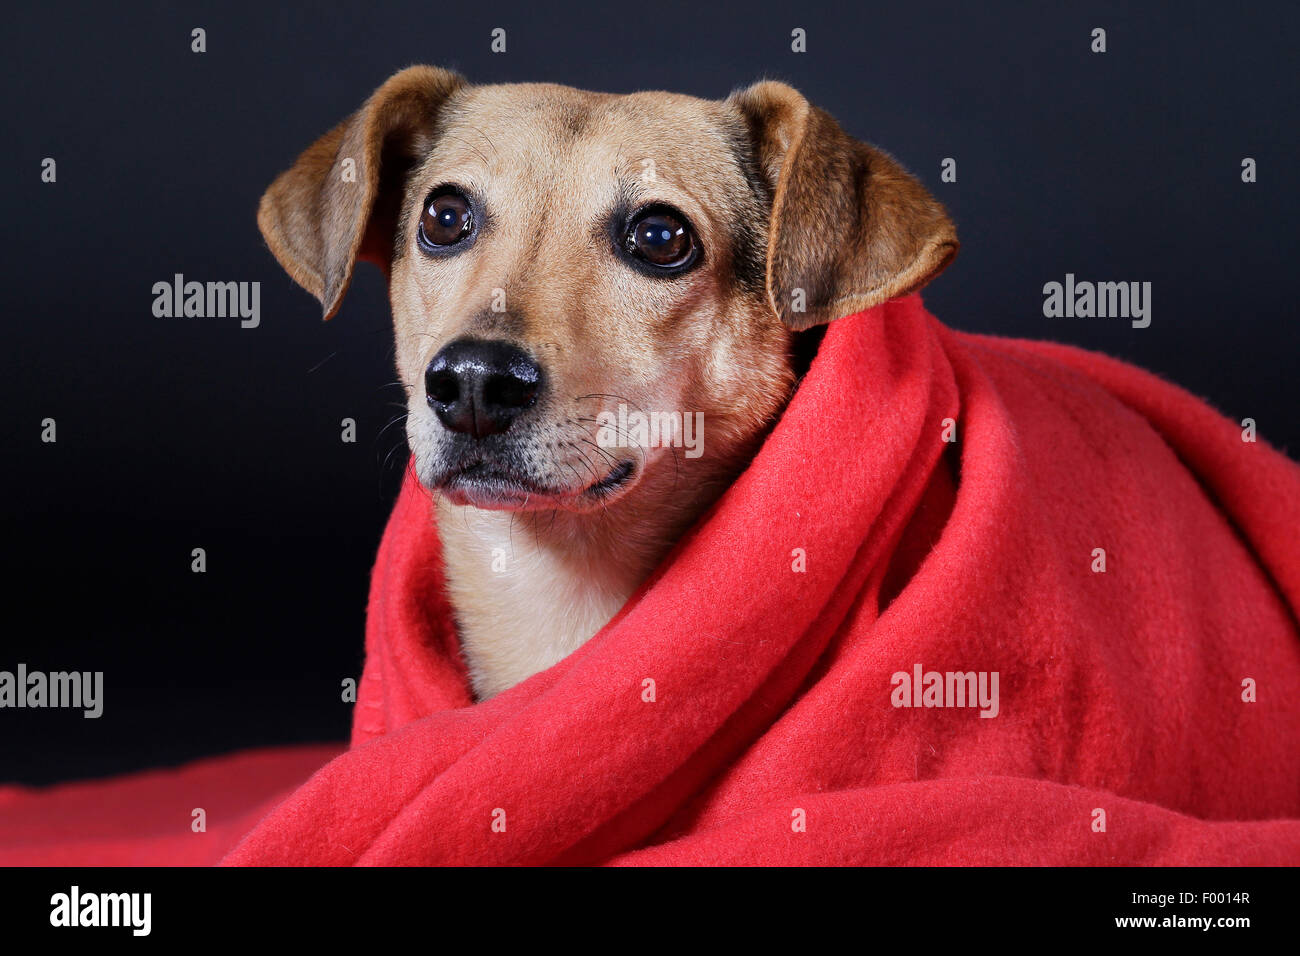 domestic dog (Canis lupus f. familiaris), wrapped in a red blancet in front of black background, portrait - Stock Image